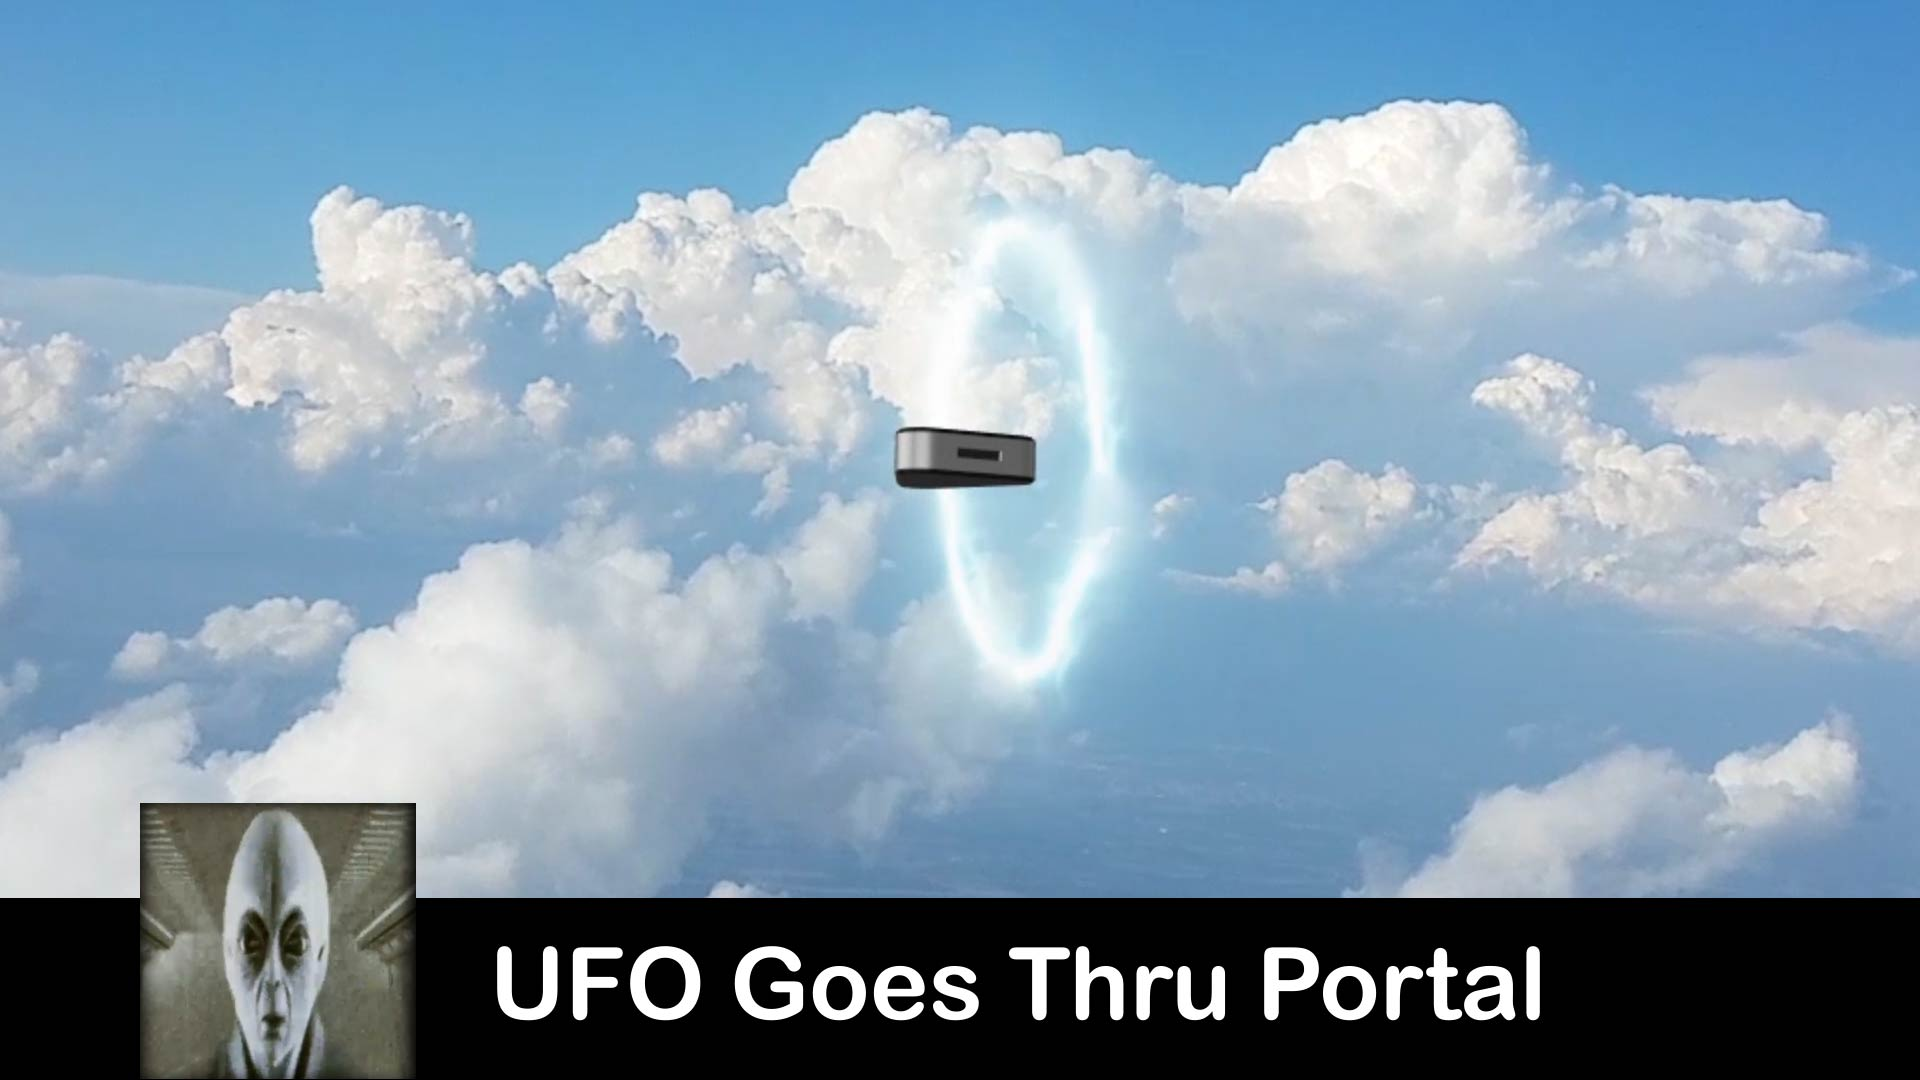 UFO Goes Thru Portal July 29th 2018